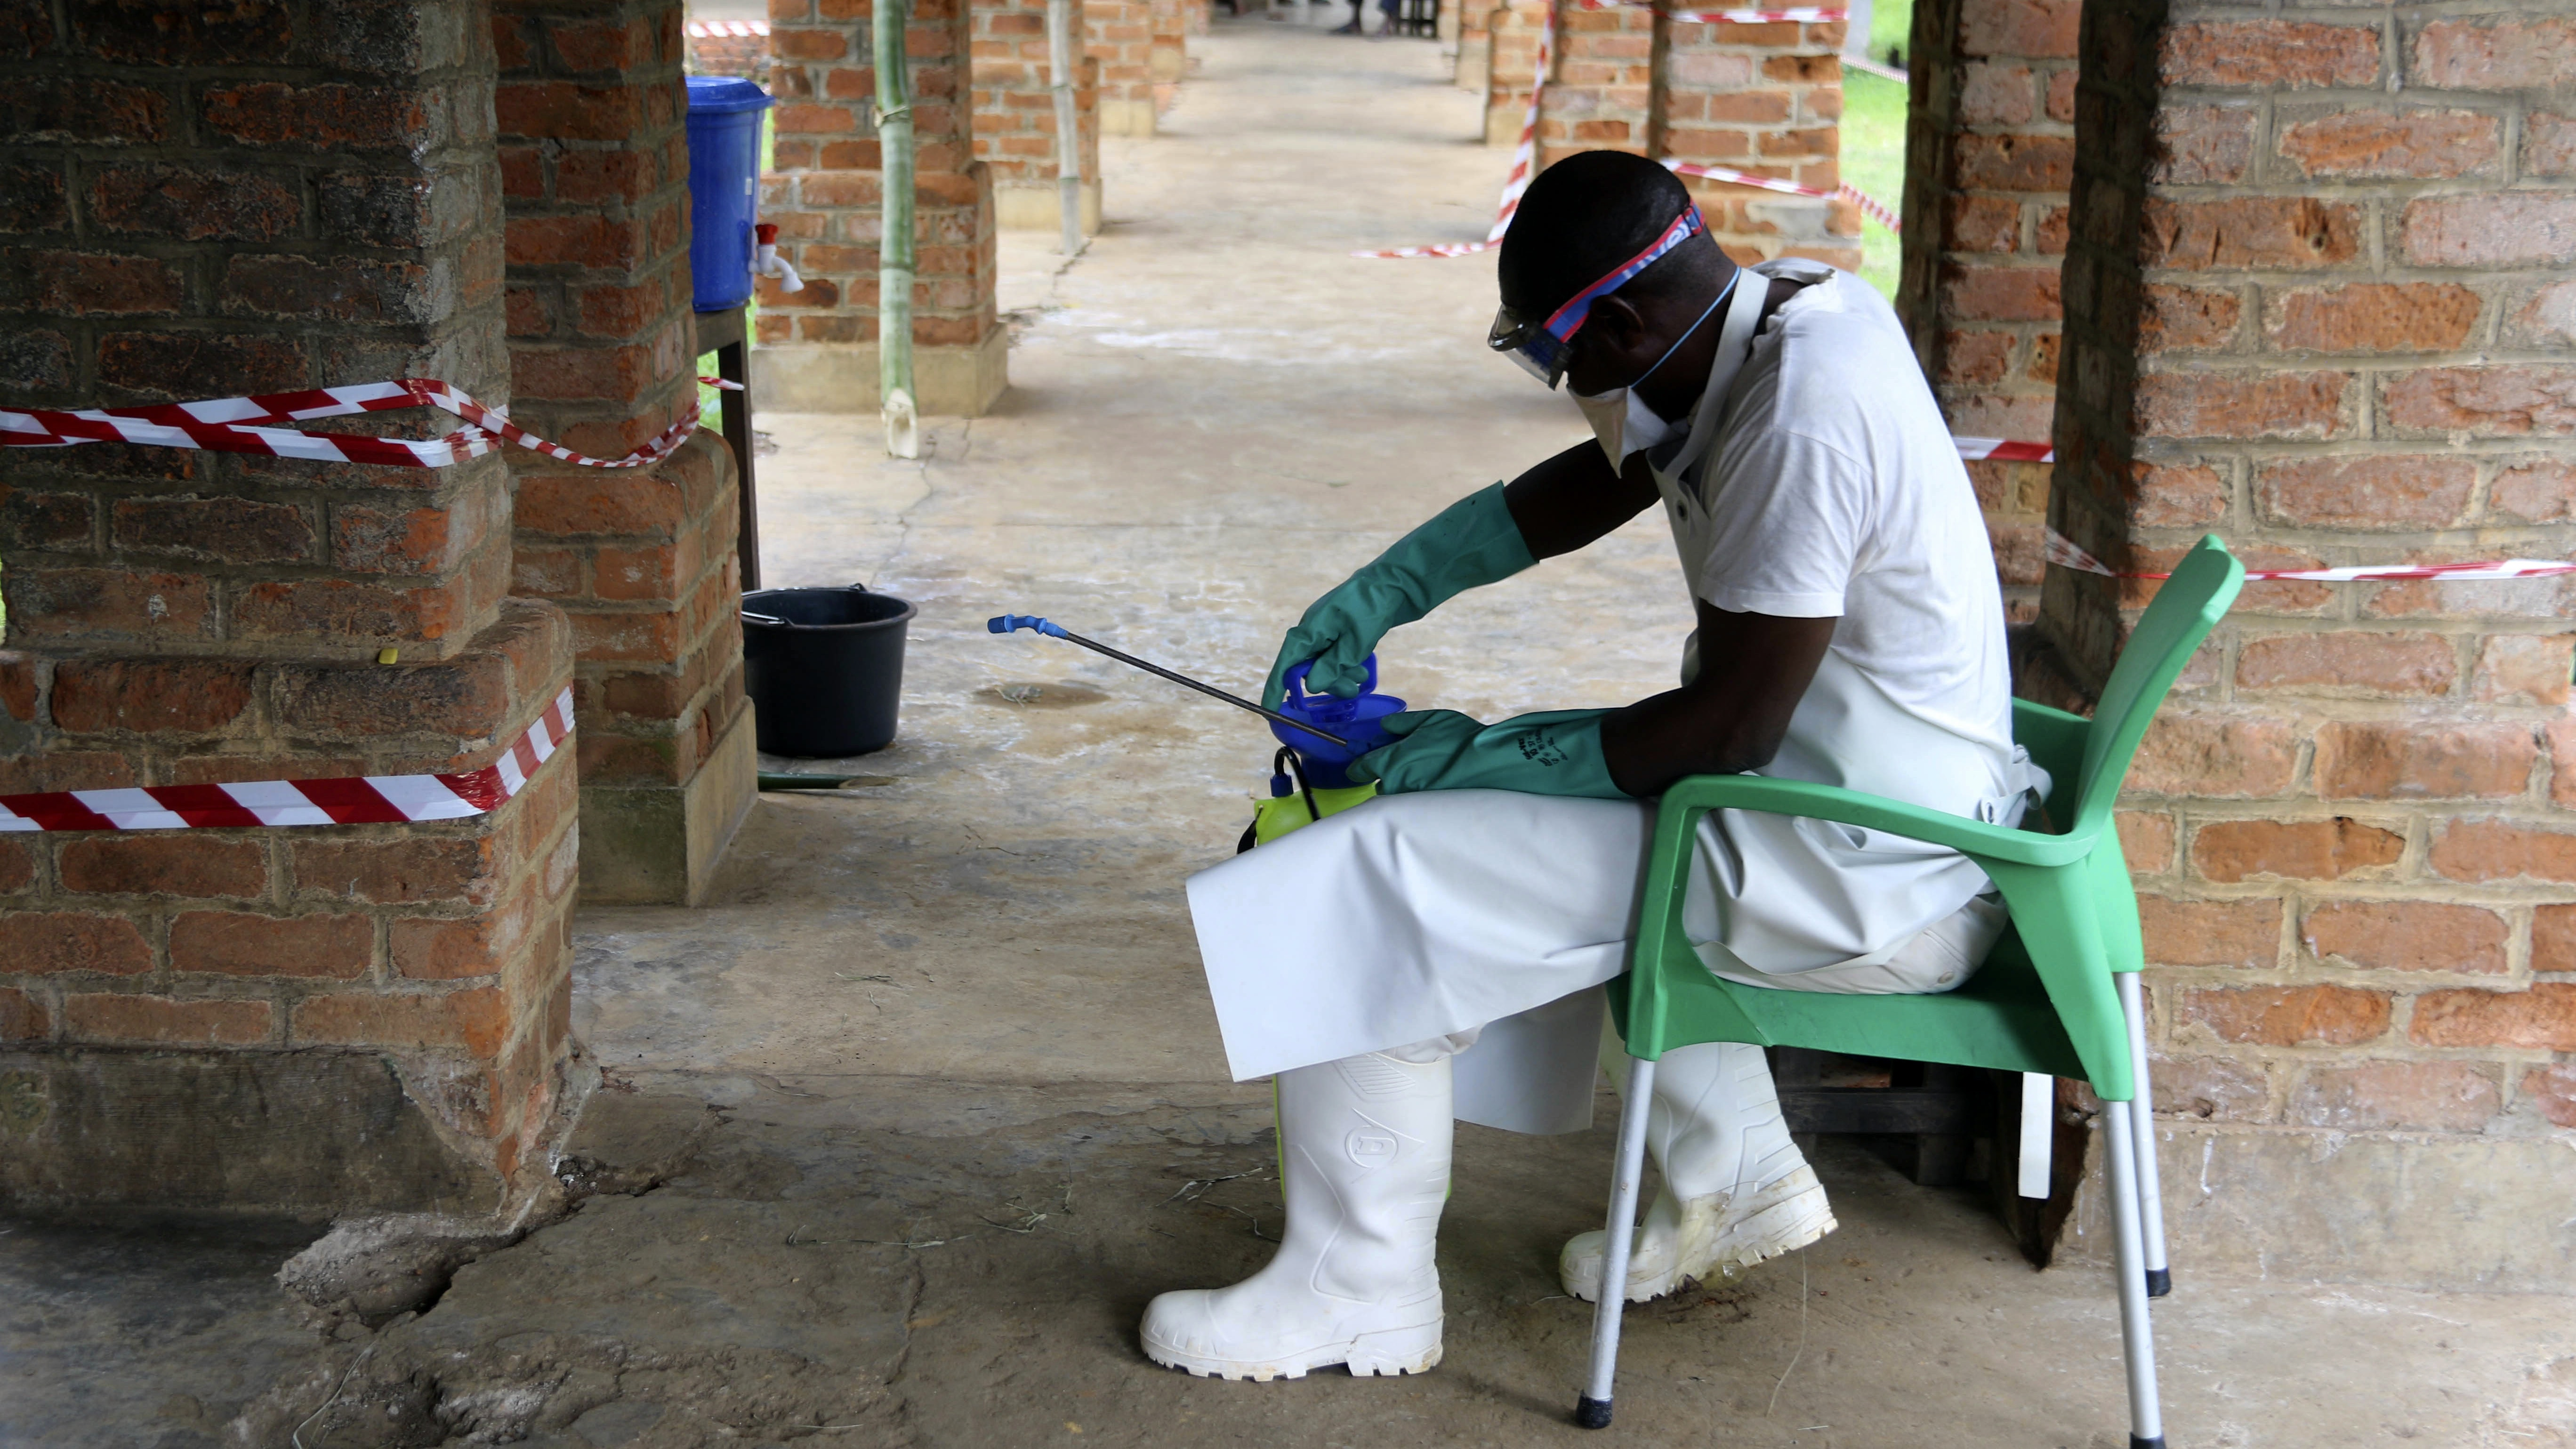 d6bbd6147a5c Congo s latest Ebola outbreak does not yet warrant being declared a global  health emergency